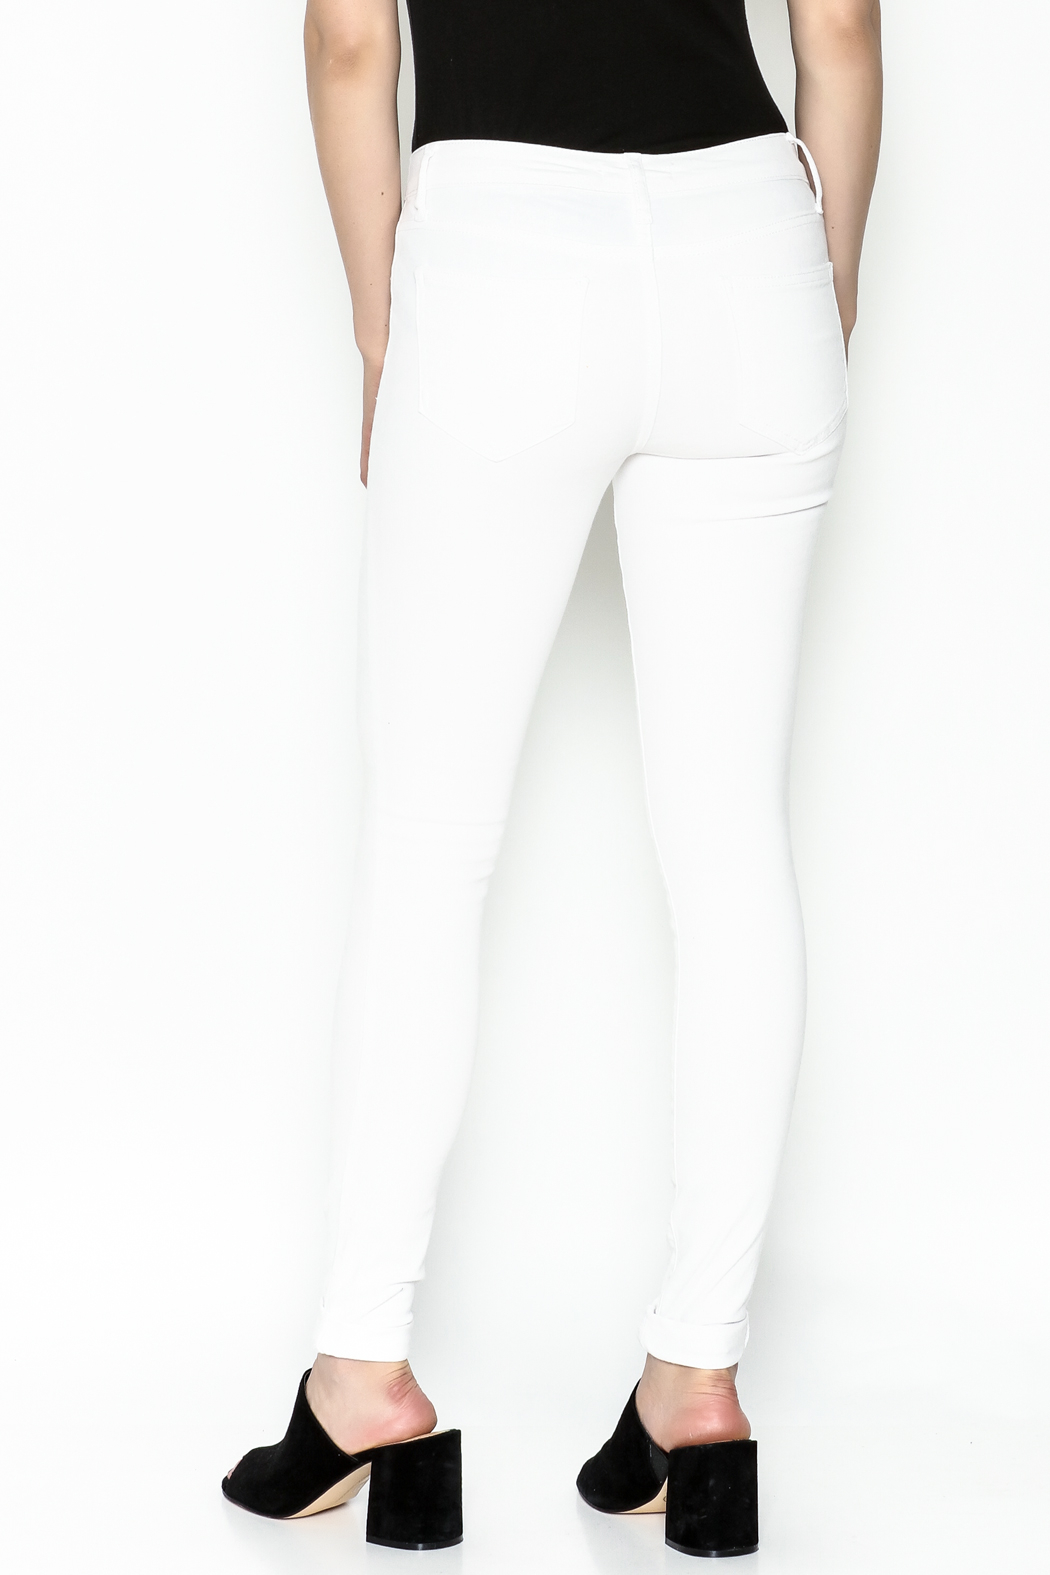 Cello Jeans White Denim Skinny Jeans - Back Cropped Image